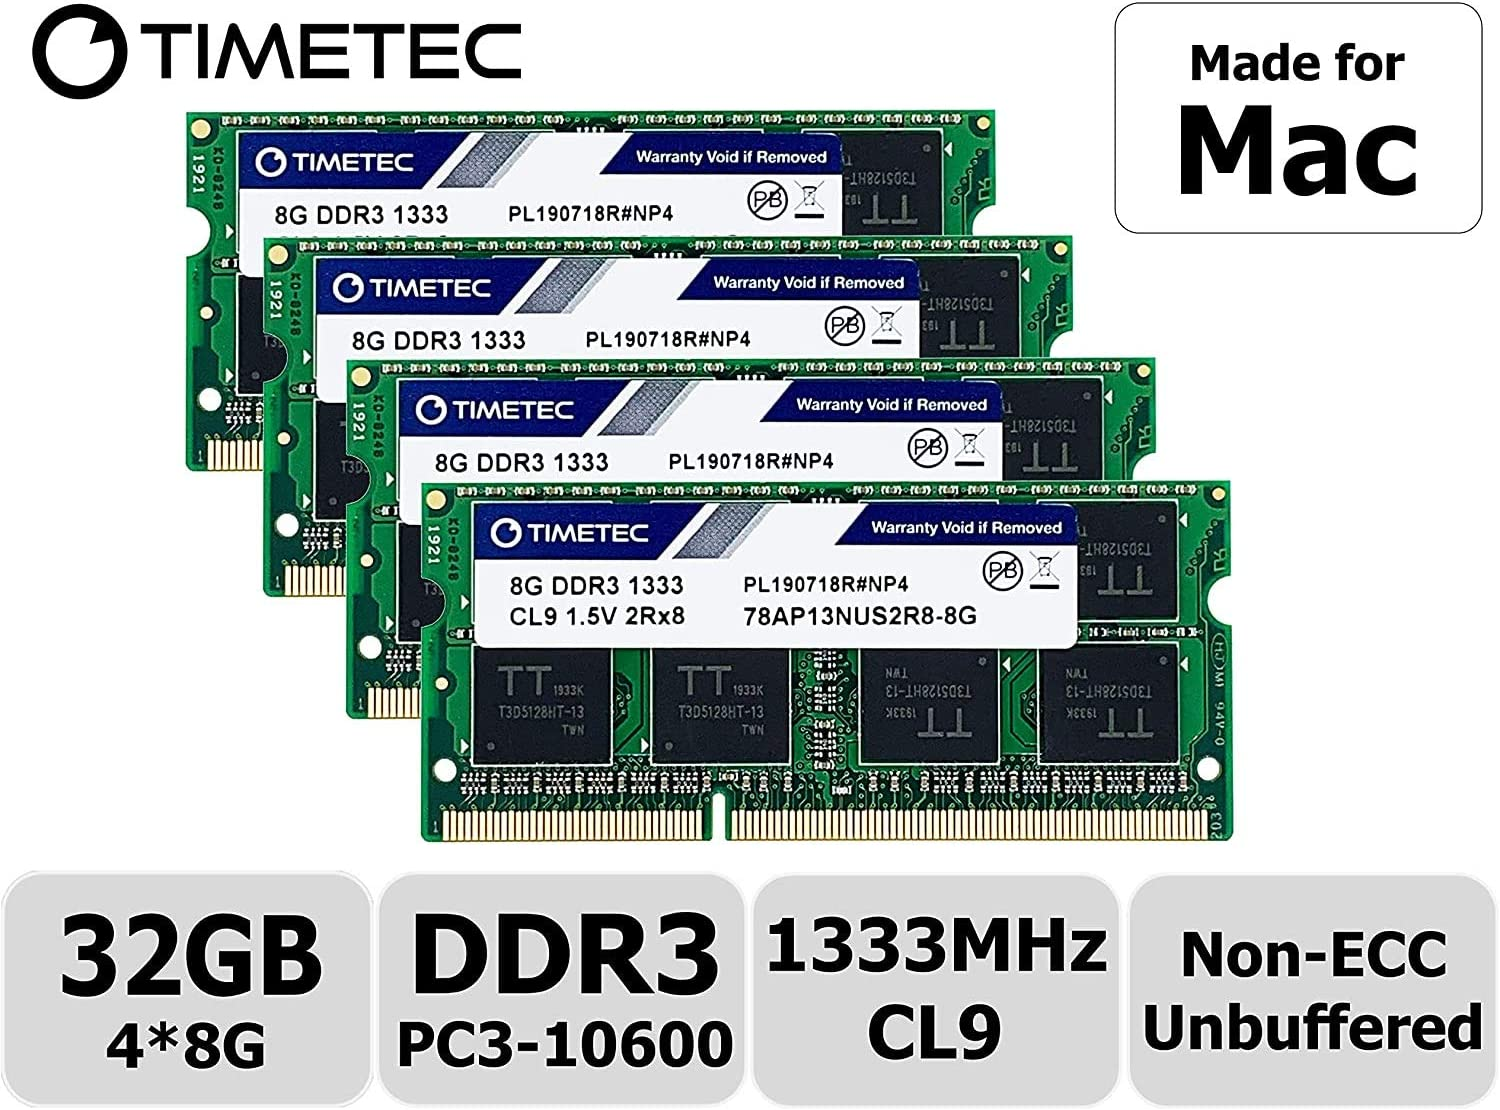 Timetec Hynix IC 32GB KIT(4x8GB) Compatible for Apple DDR3 1333MHz PC3-10600 for iMac (Mid 2010 27 inch, Mid 2011 21.5/27 inch) MAC SODIMM Upgrade | MAX RAM Upgrade for iMac 11,3 iMac 12,1 iMac 12, 2